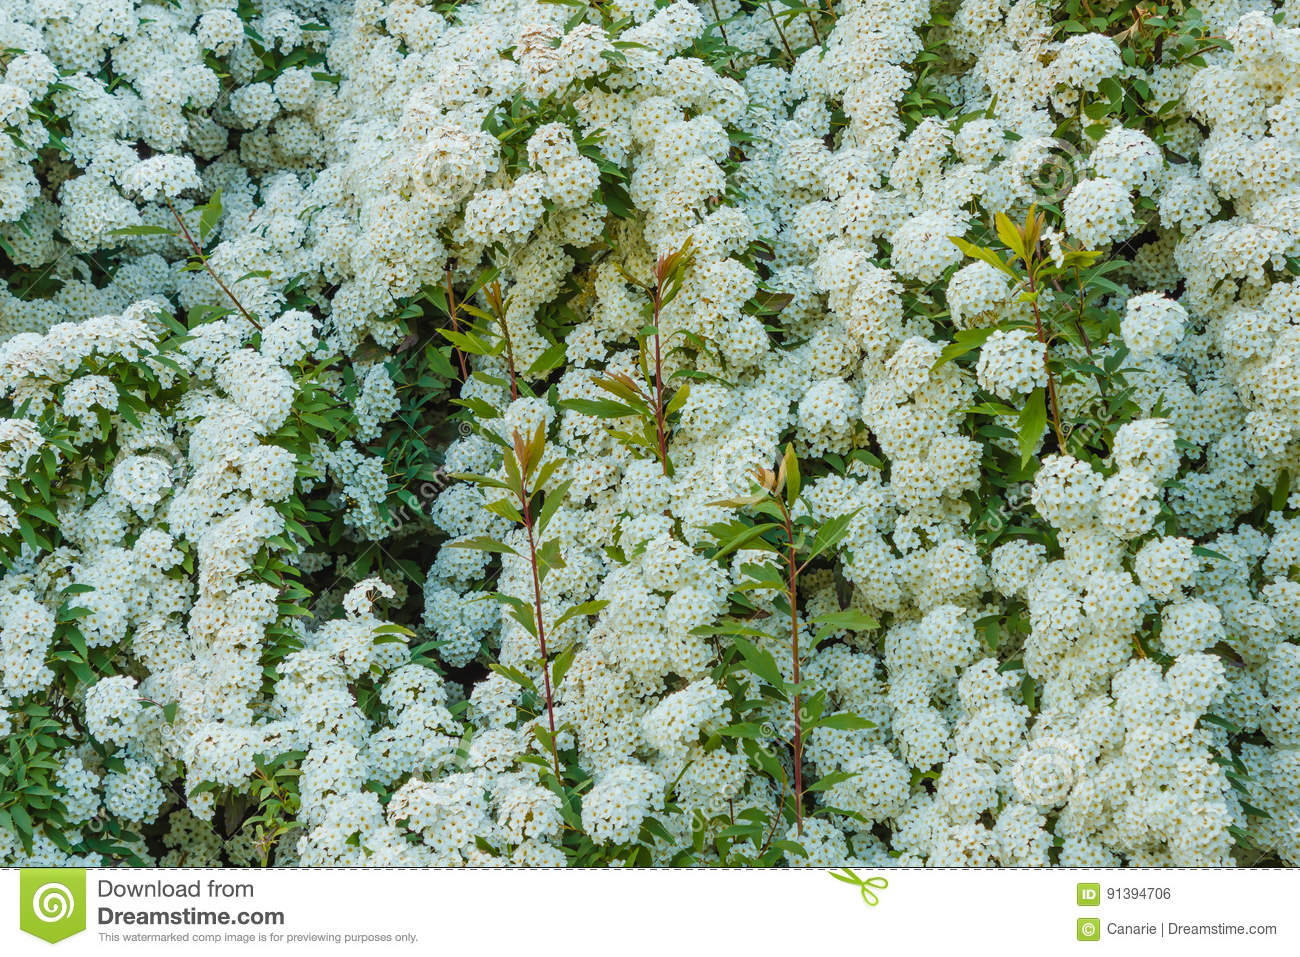 A Bush Of White Spirea Flowers Stock Photo Image Of Spring